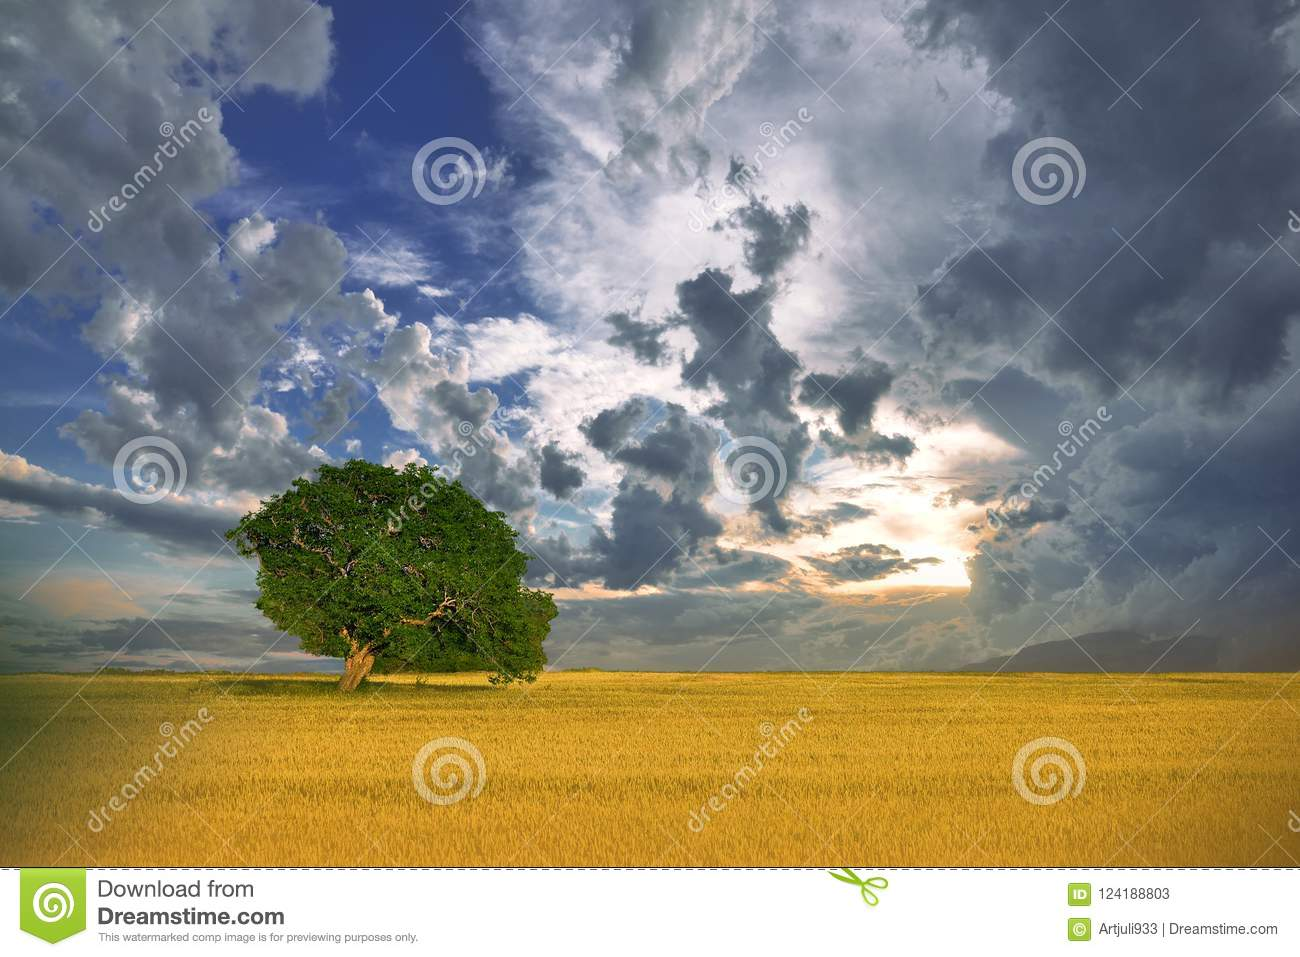 Beautiful Nature.Art Photography.Fantasy design.Creative Background.Amazing Colorful Landscape.Blue Sky,clouds.Panorama,tree.